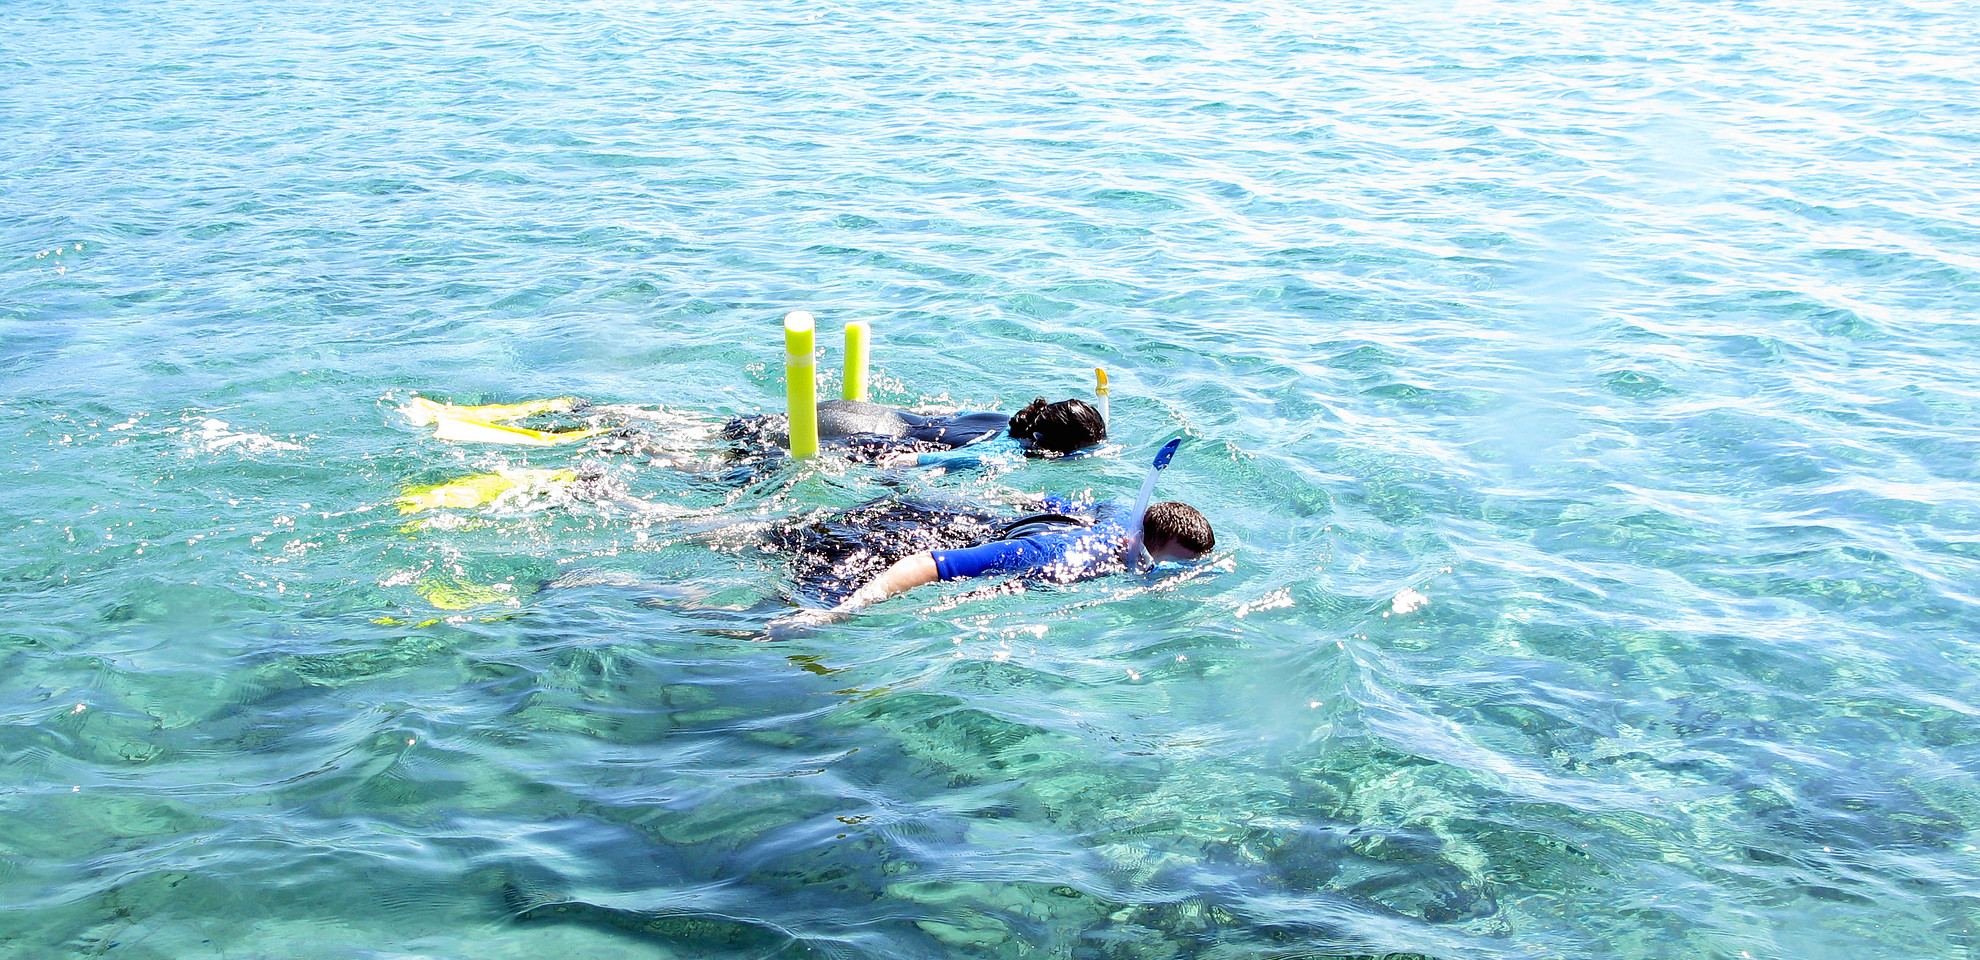 Snorkeling in Athens: Book your snorkeling tour now